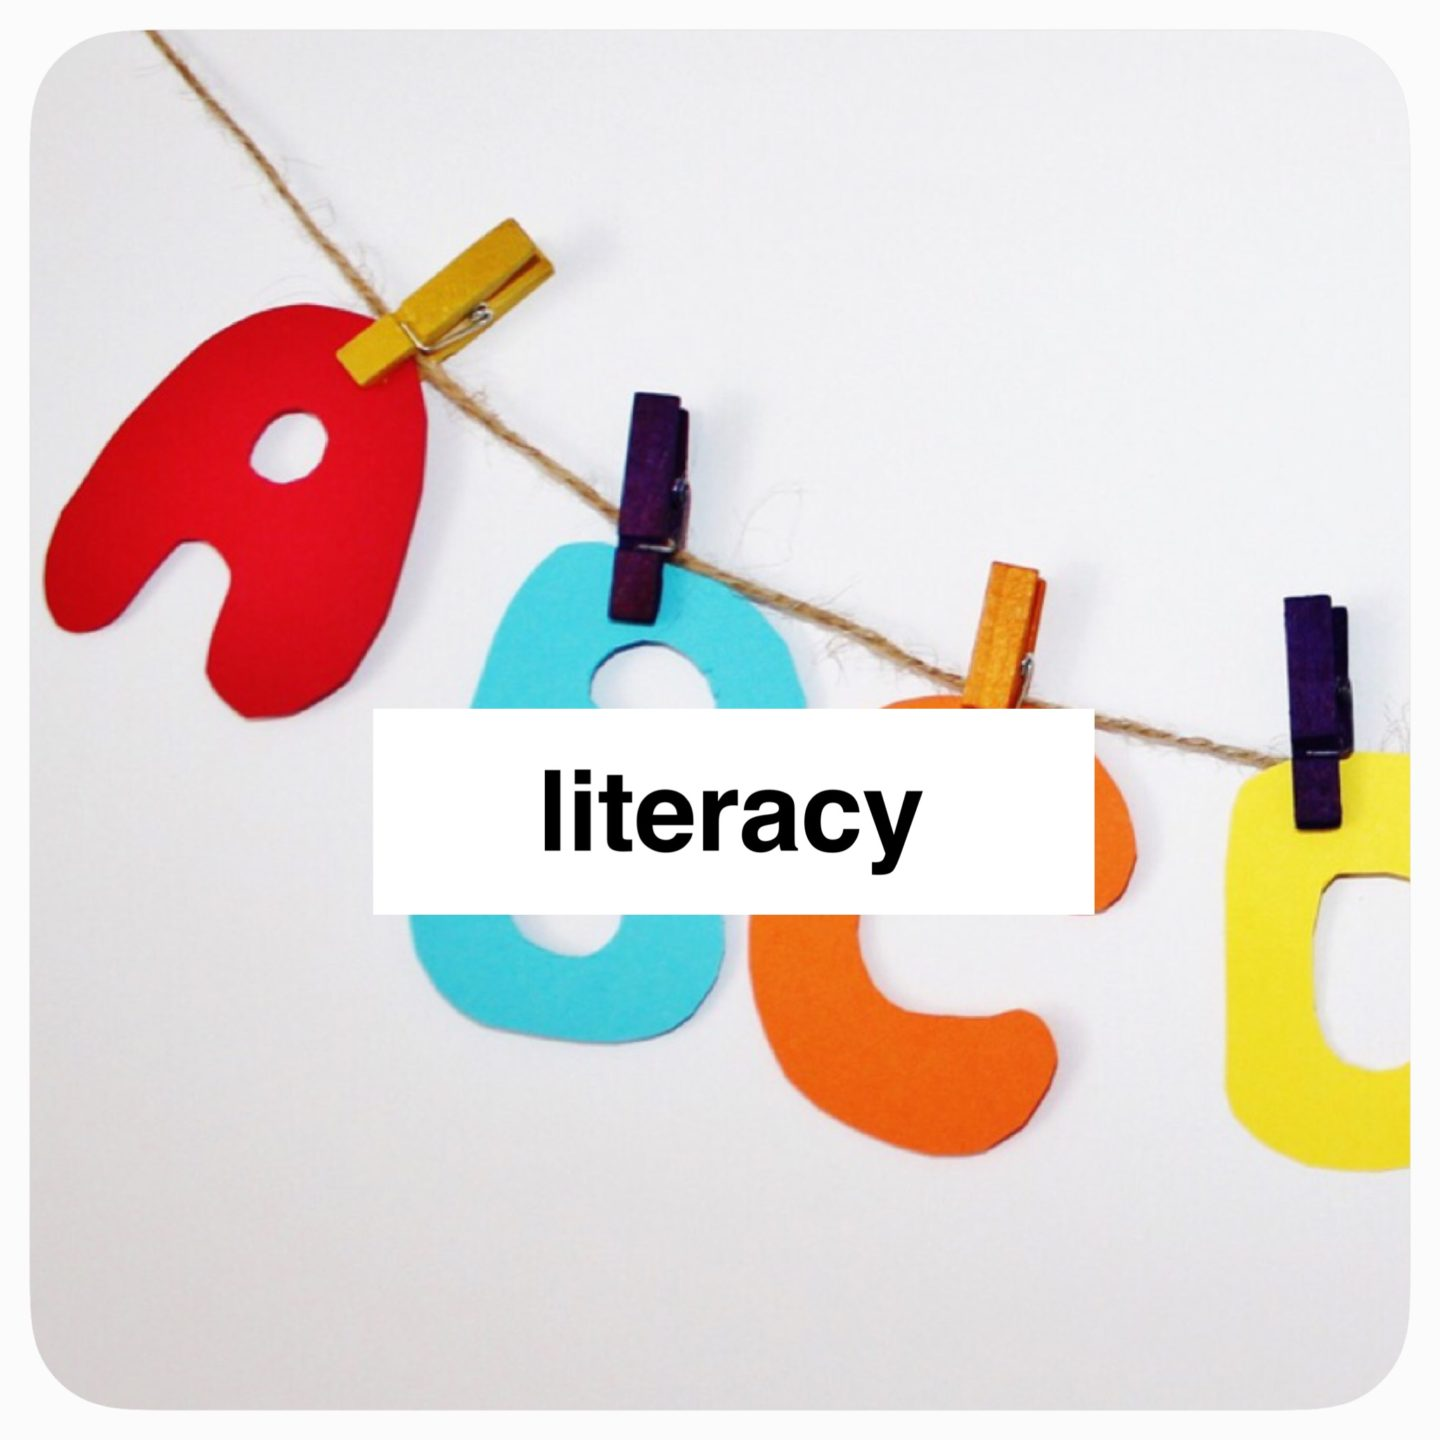 Literacy play from @how2playtoday